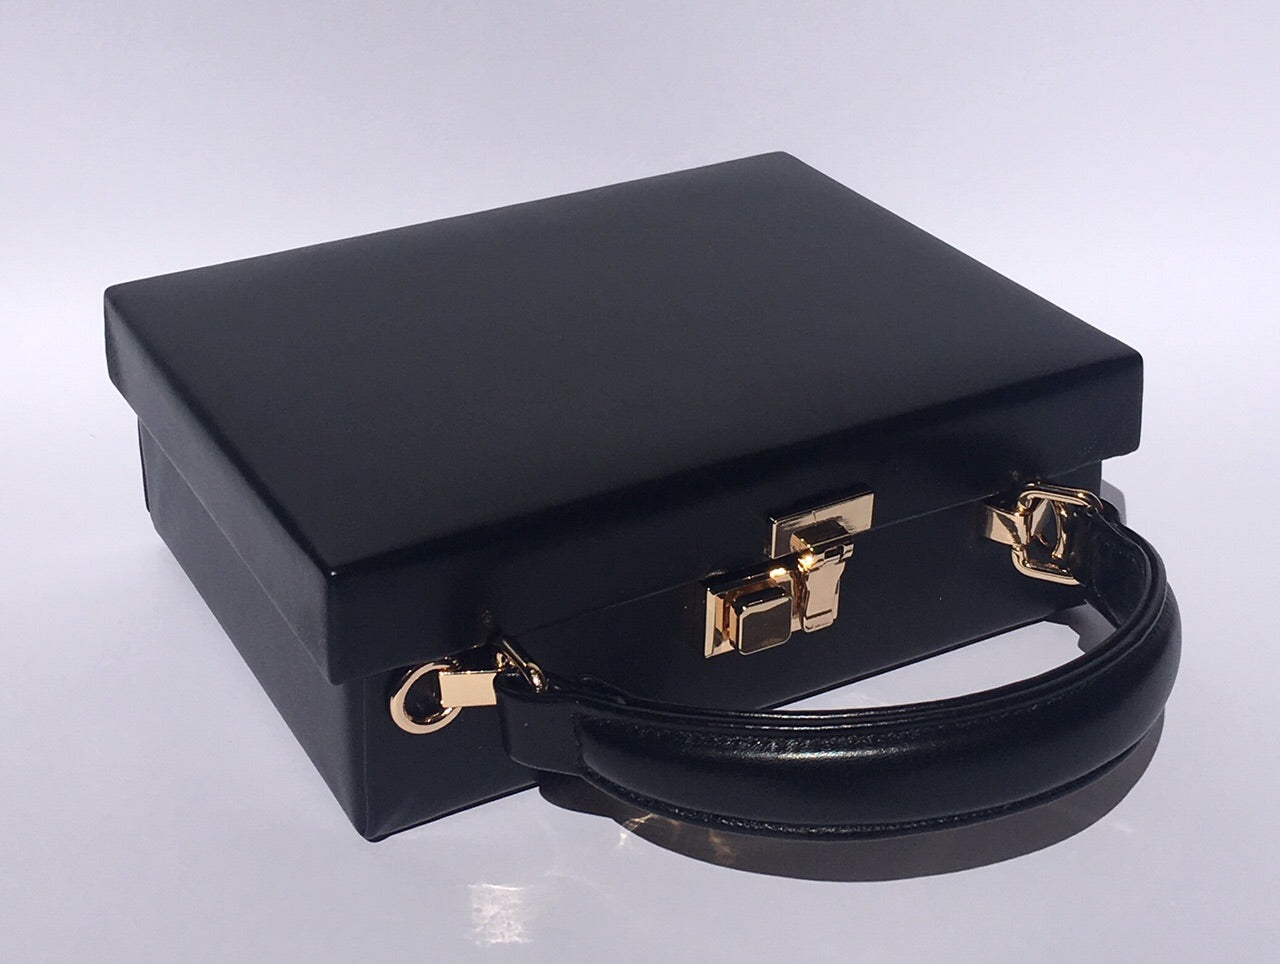 Fifi in Black - Box bag